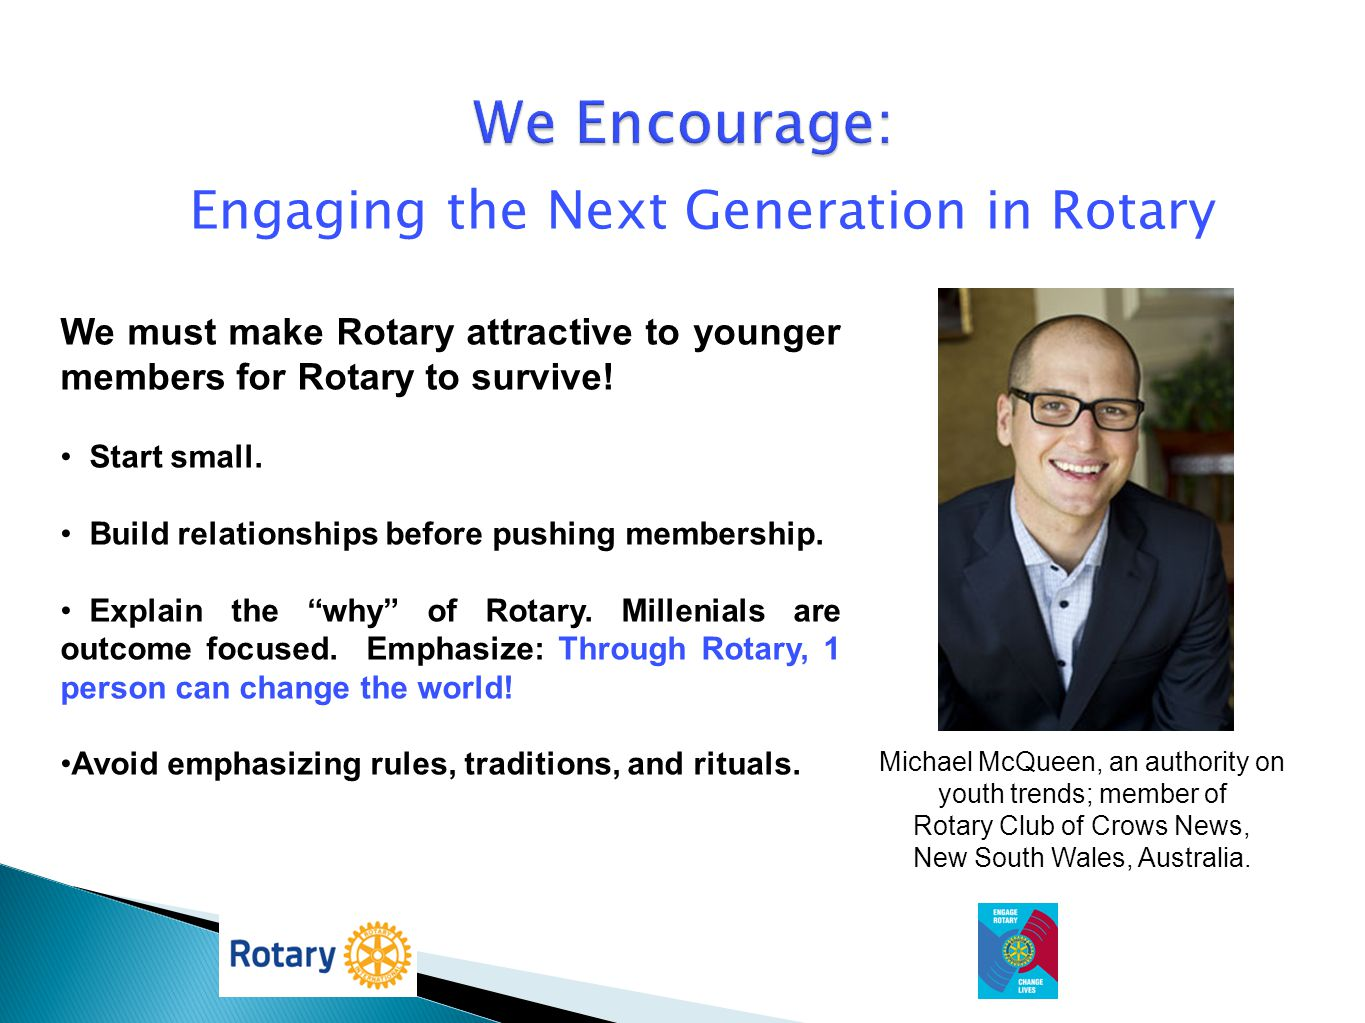 We Encourage: Engaging the Next Generation in Rotary